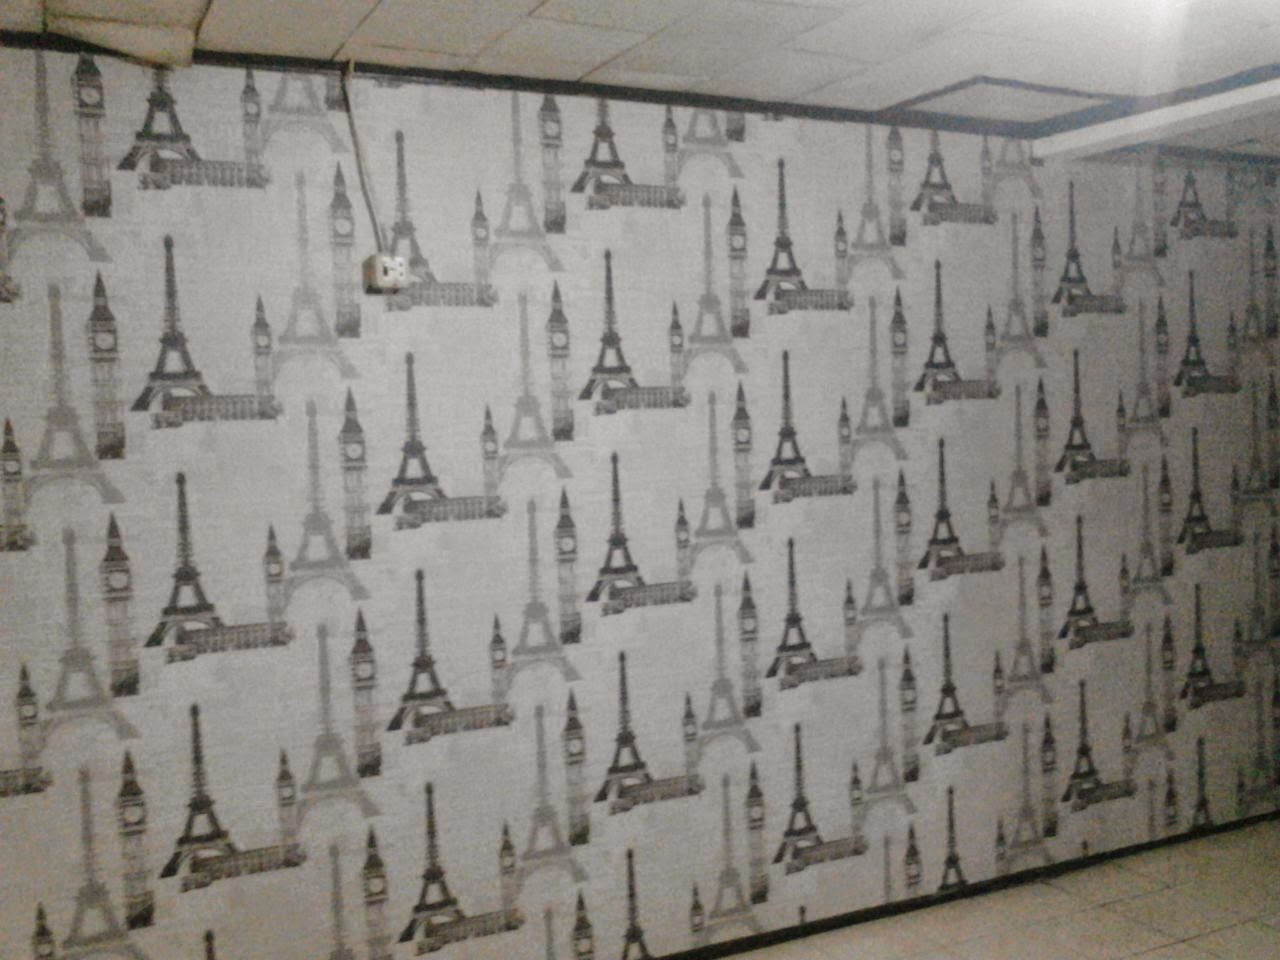 Wallpaper Wallsticker Lantai Kayu Lantai Vynill Carpet Custom